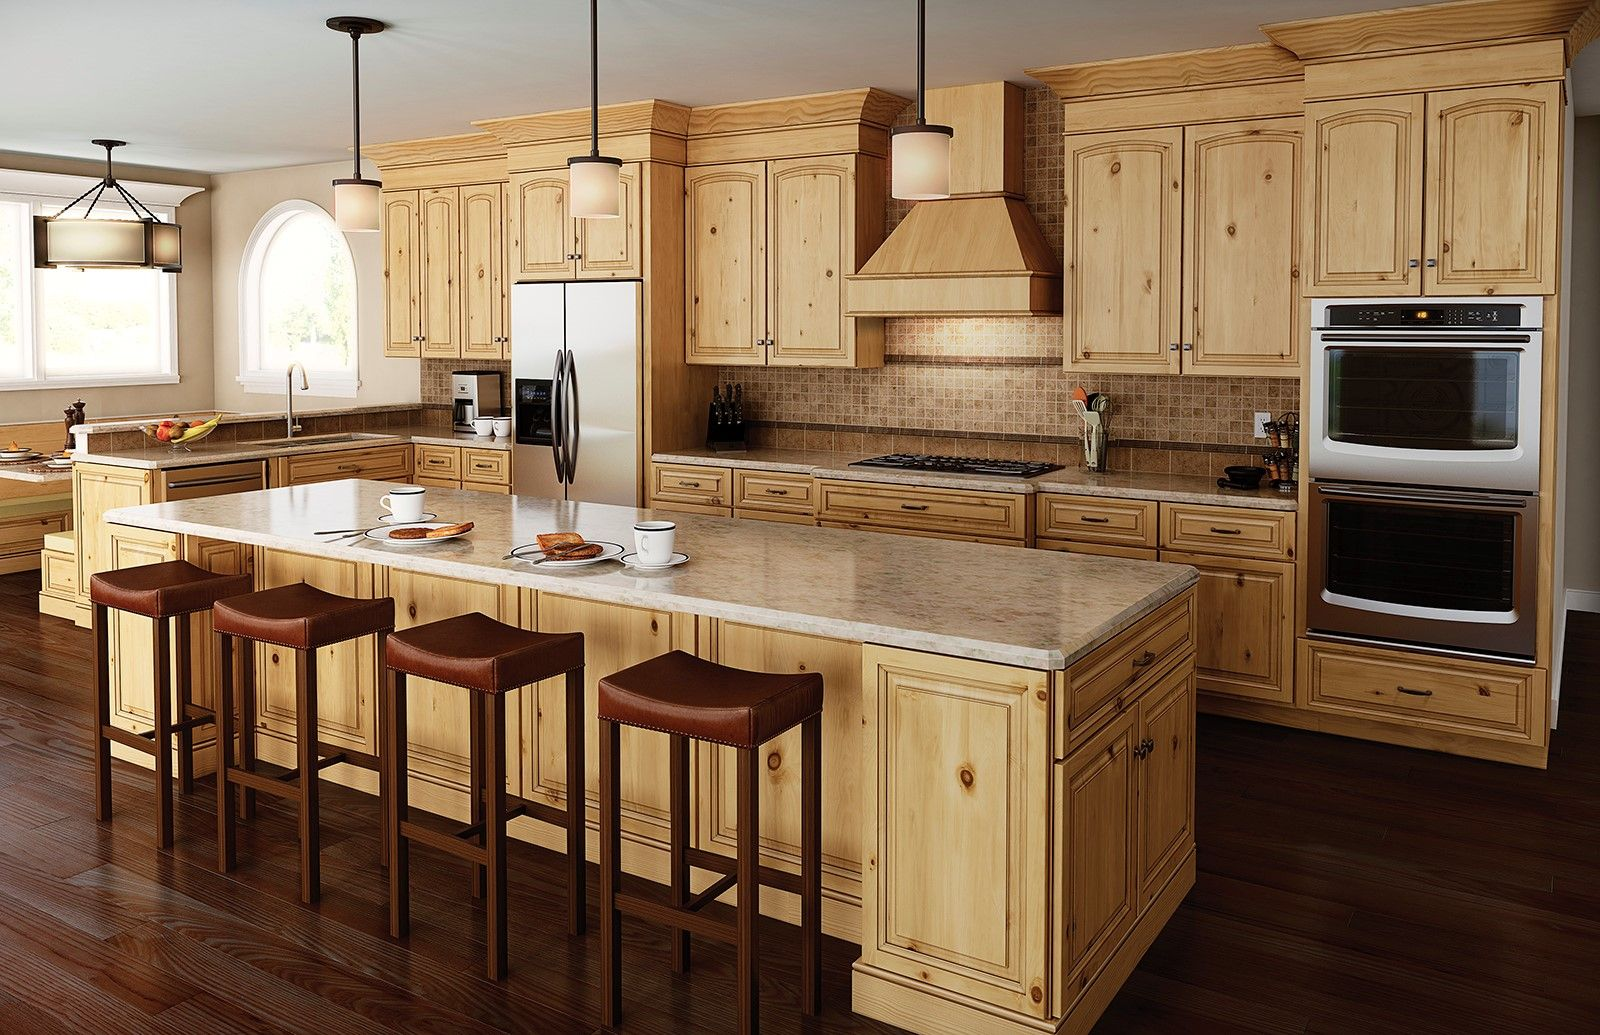 Best Images Of Kitchen Cabinets In Natural Rustic Birch 400 x 300